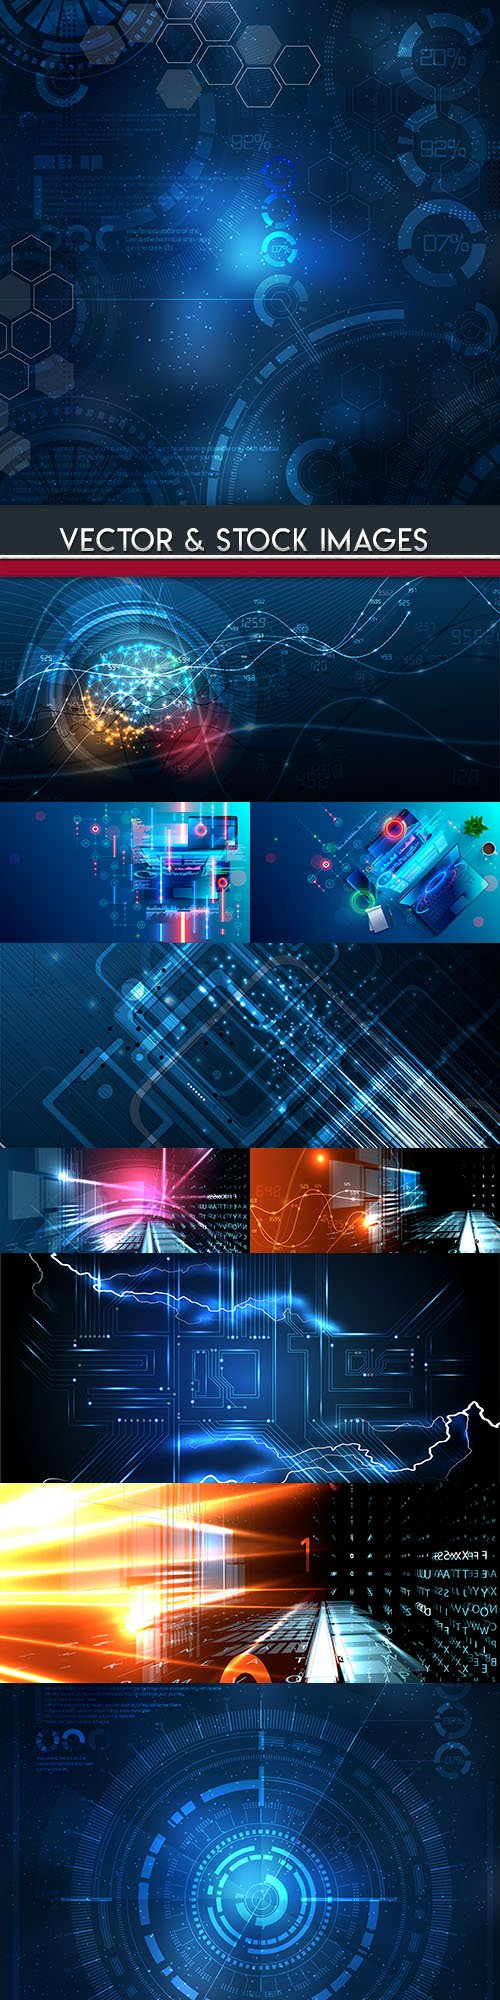 Technology future abstract background blue 6